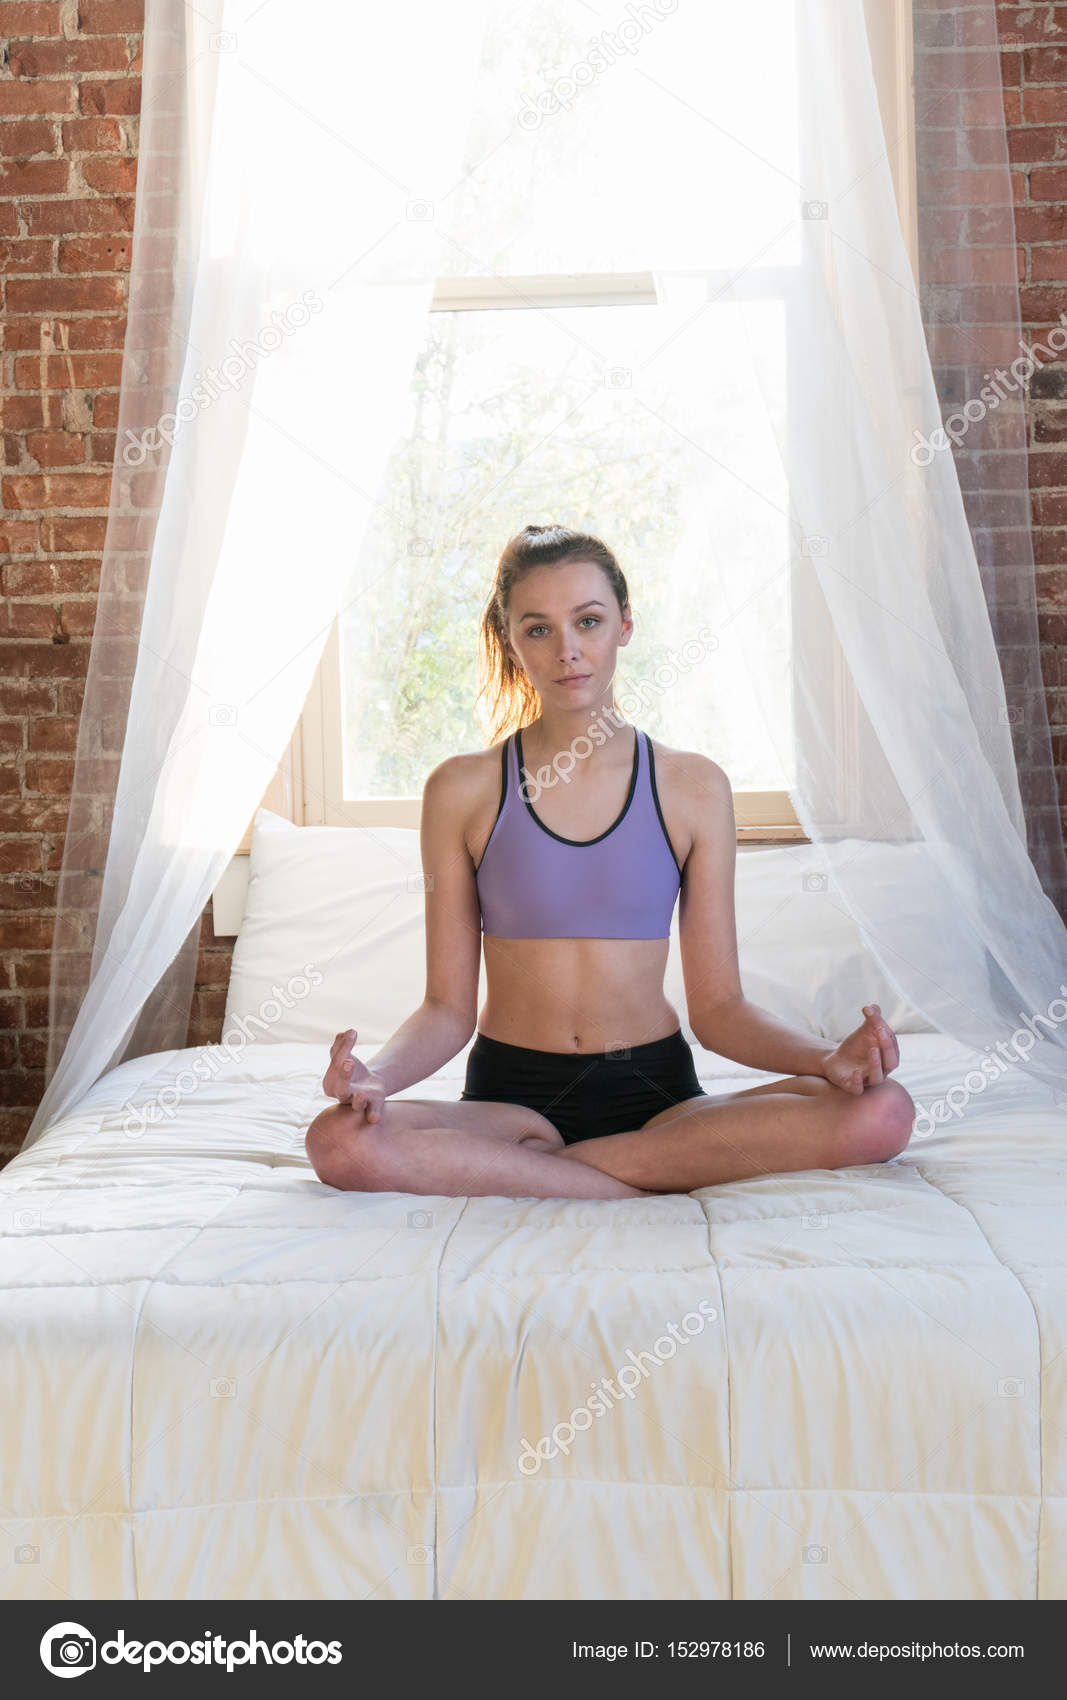 1860dc6707 Young adult woman wearing sports bra and shorts sitting yoga style on bed  on a summer